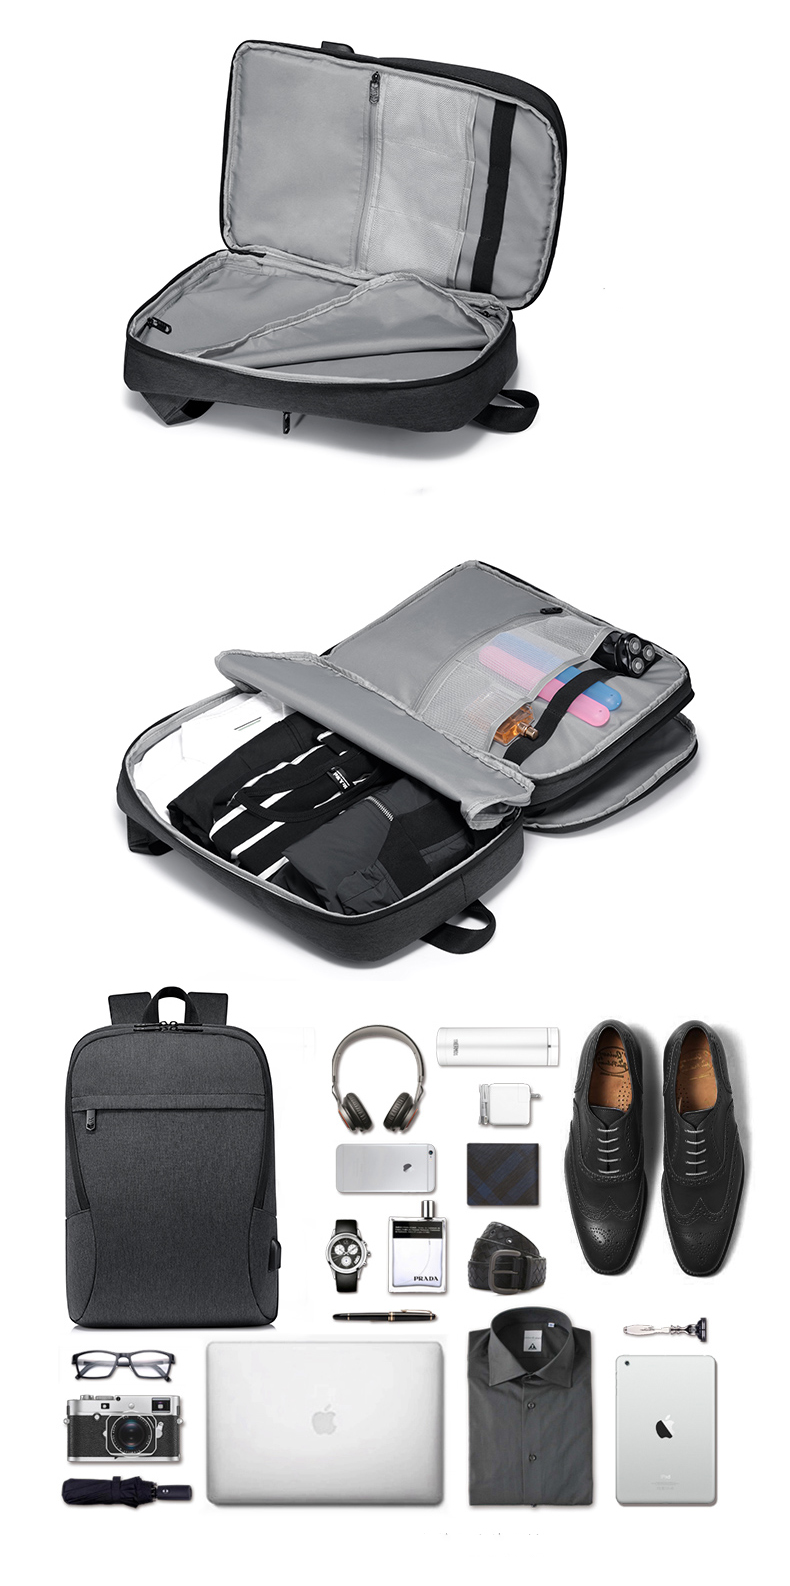 Fashion 30L multifunction water proof smart travelling day backpack back pack bagpack bag with USB earphone charger